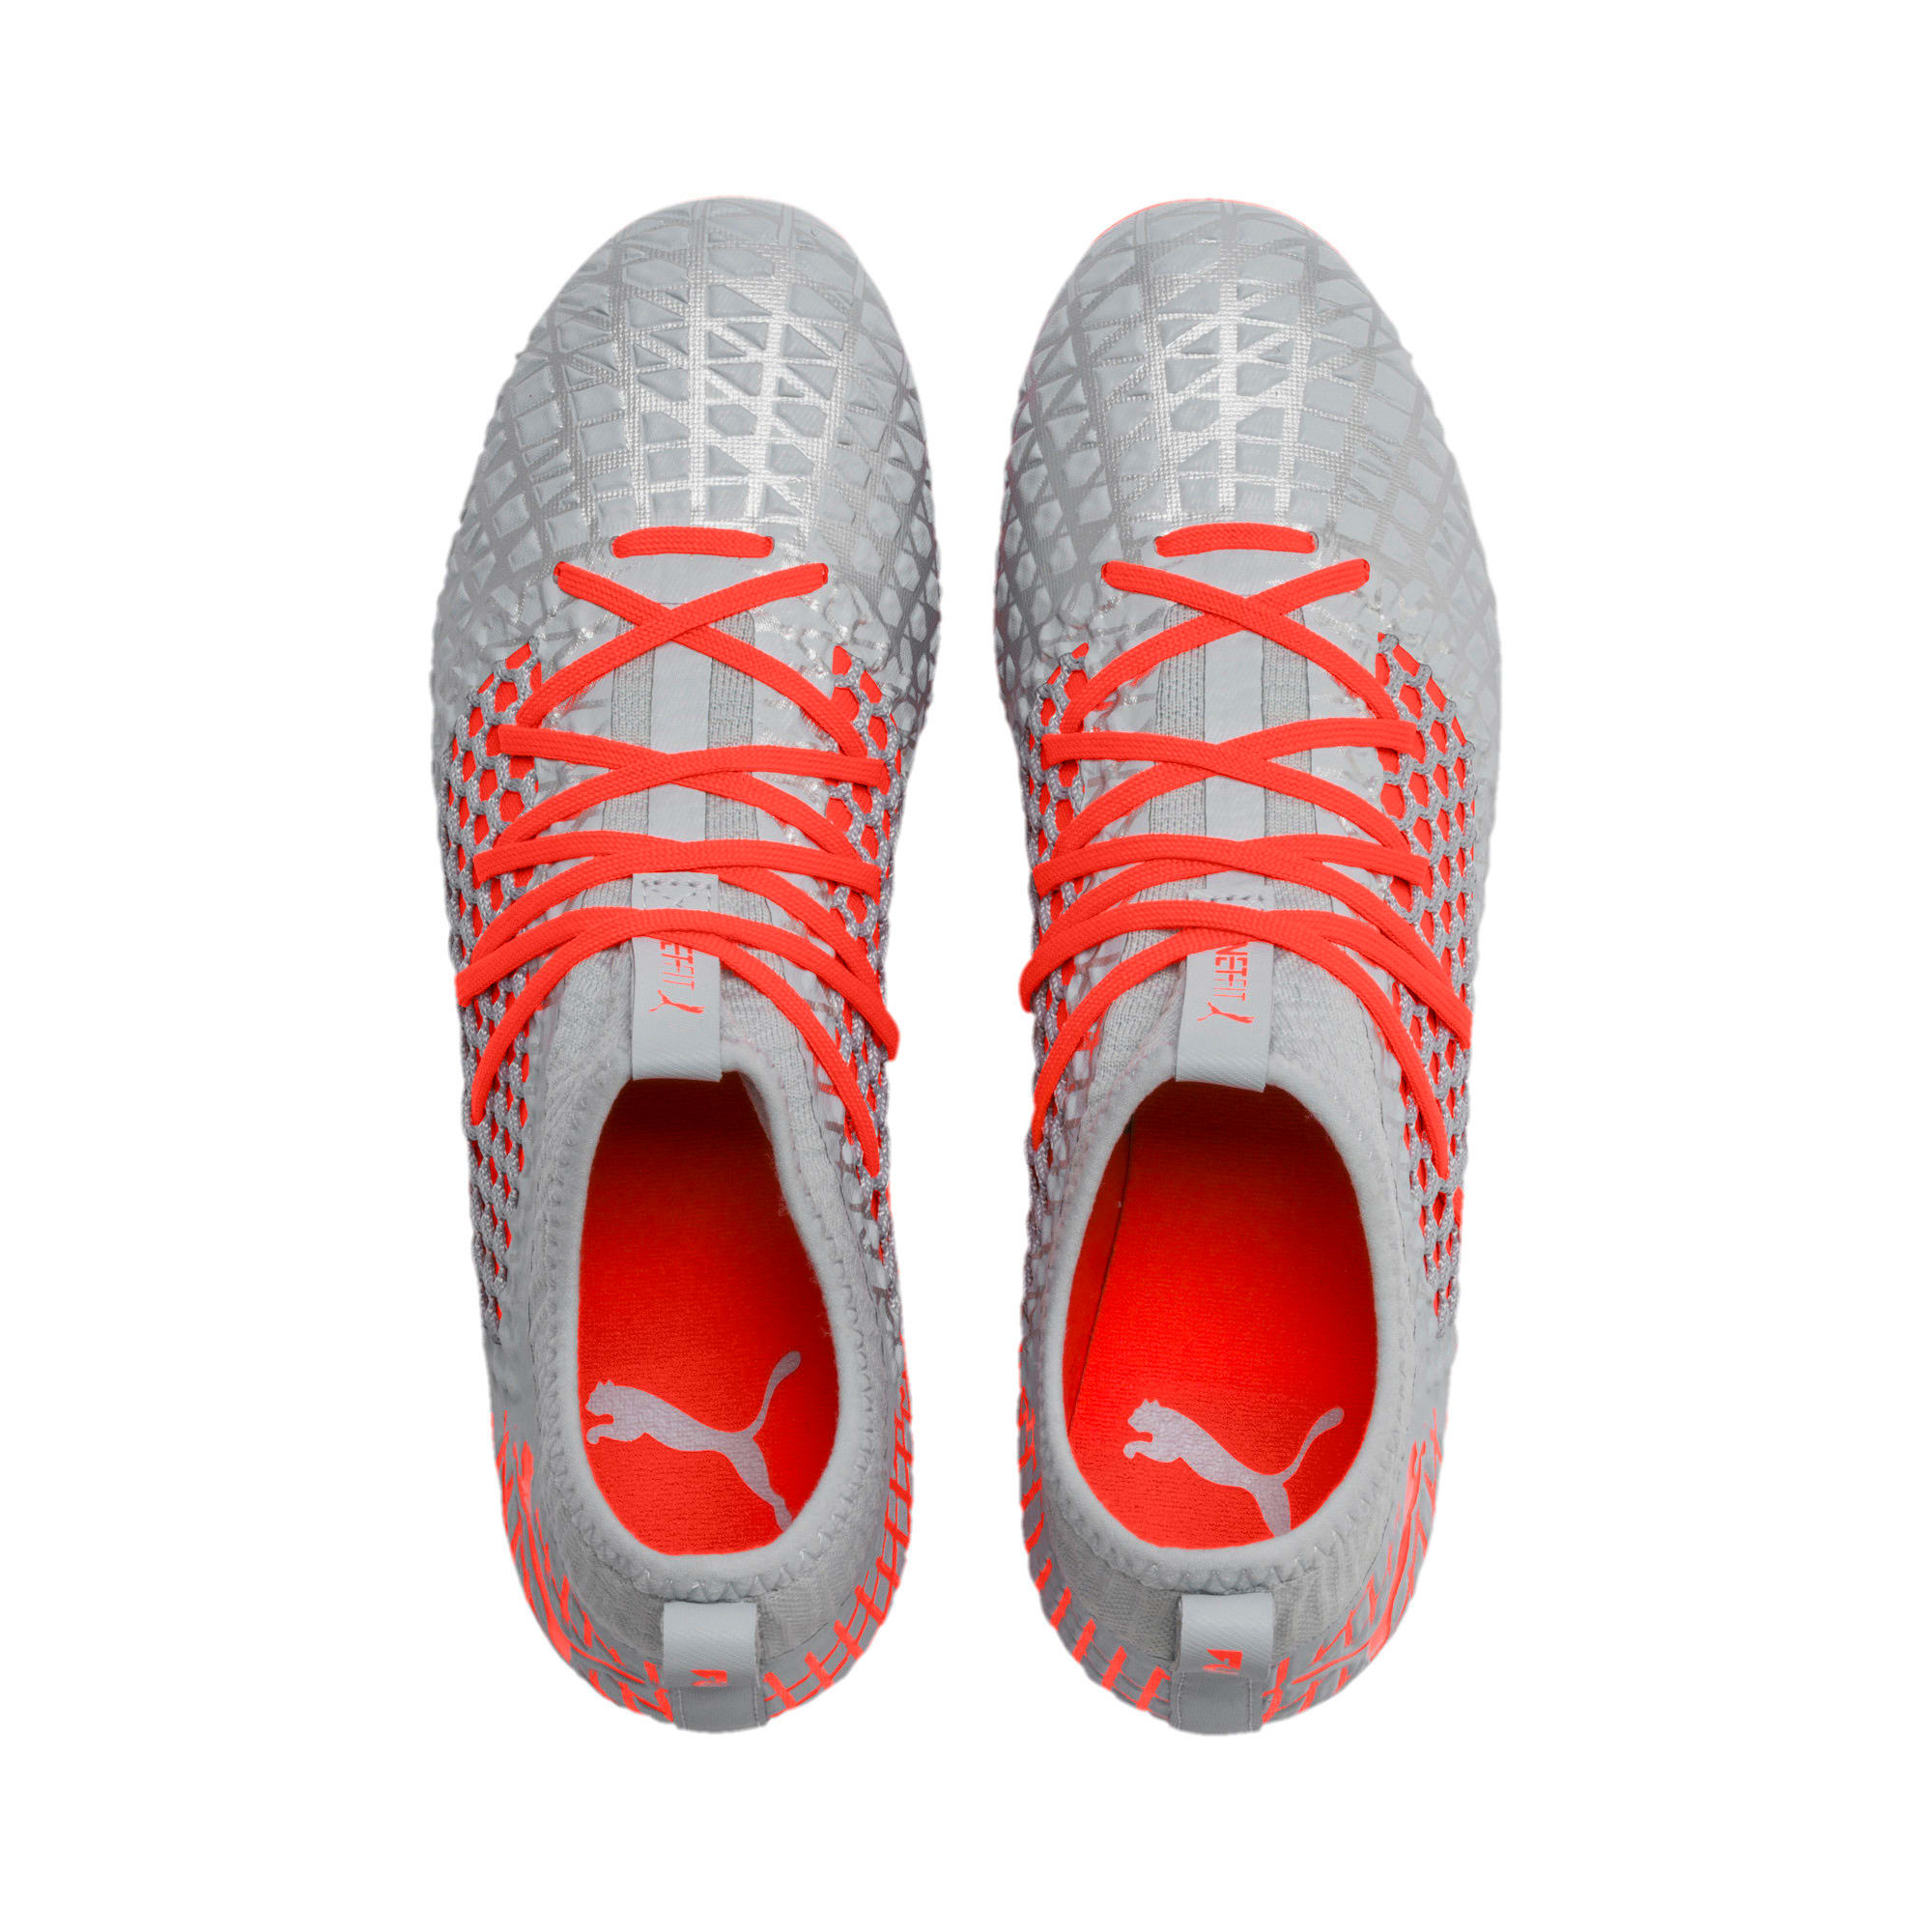 Thumbnail 7 of FUTURE 4.3 NETFIT FG/AG Herren Fußballschuhe, Glacial Blue-Nrgy Red, medium